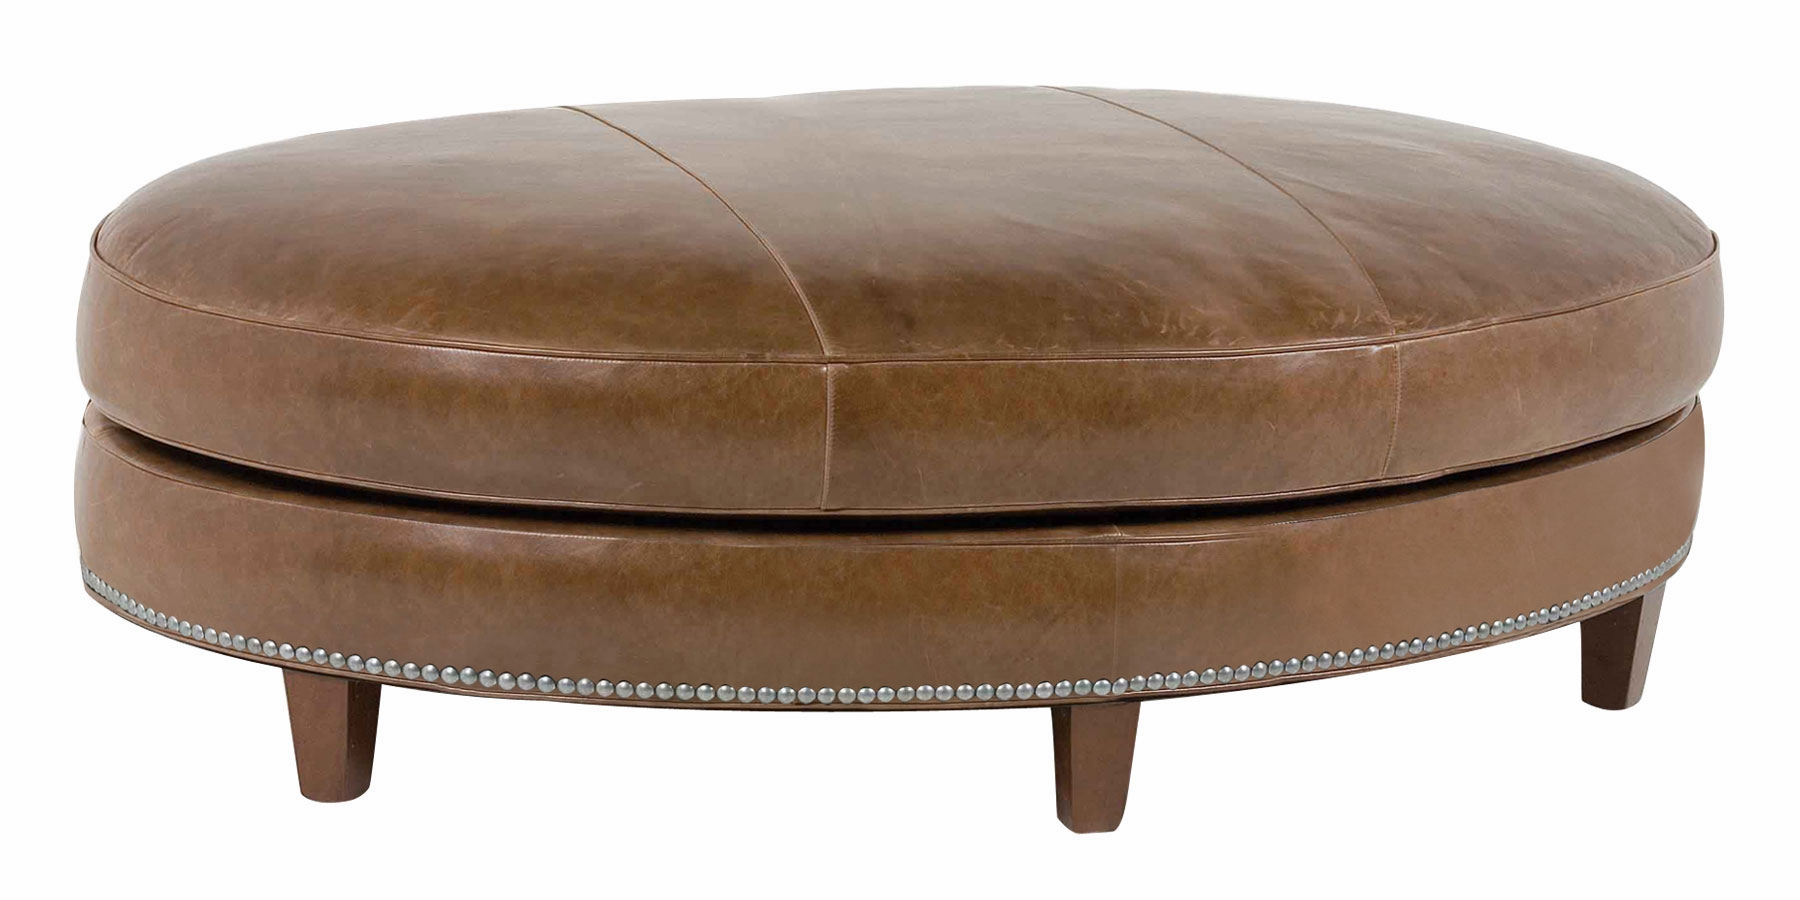 oval leather ottoman with nail trim club furniture. Black Bedroom Furniture Sets. Home Design Ideas